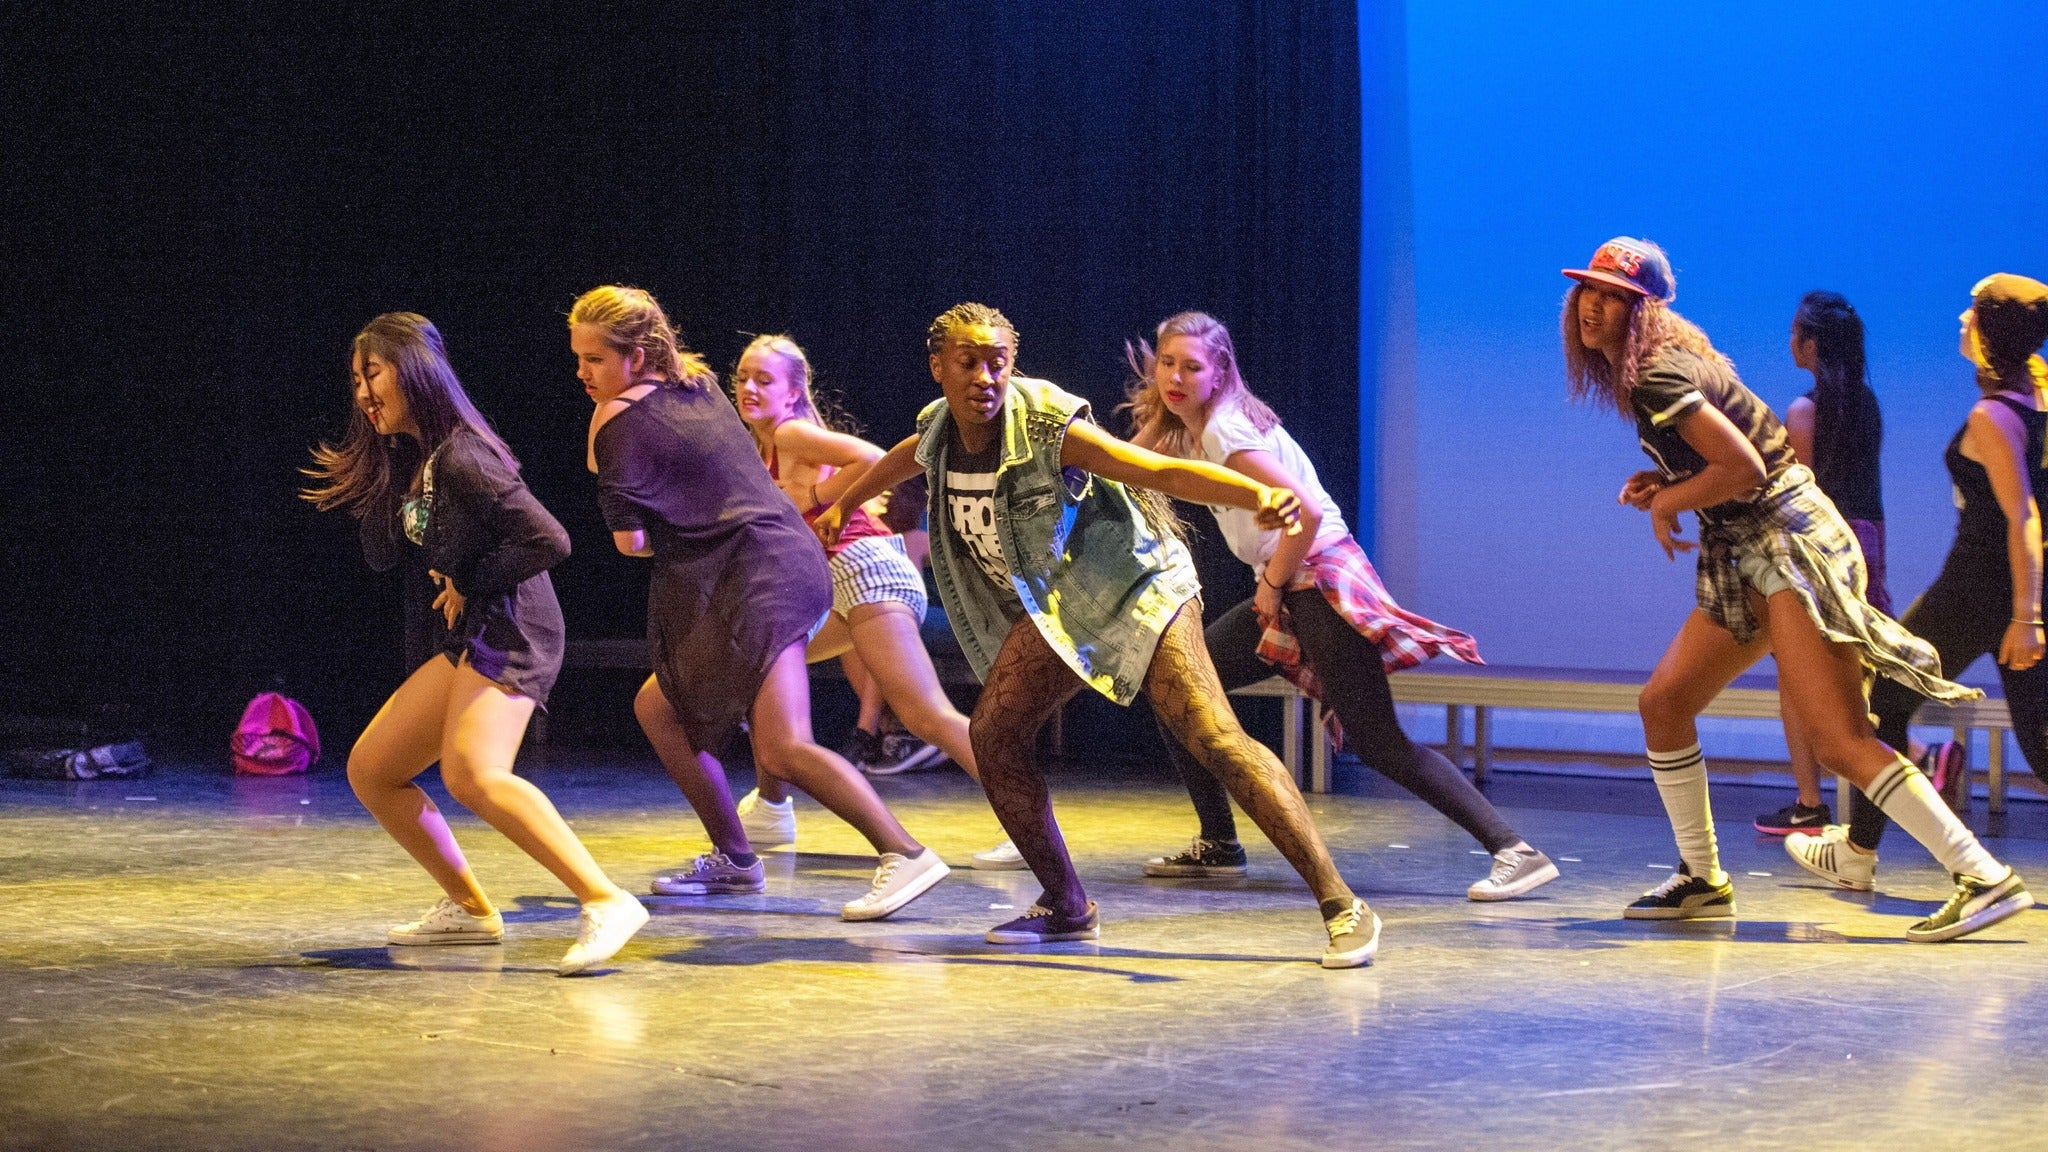 Swamp dance fest at McGuire Pavilion Black Box Theatre